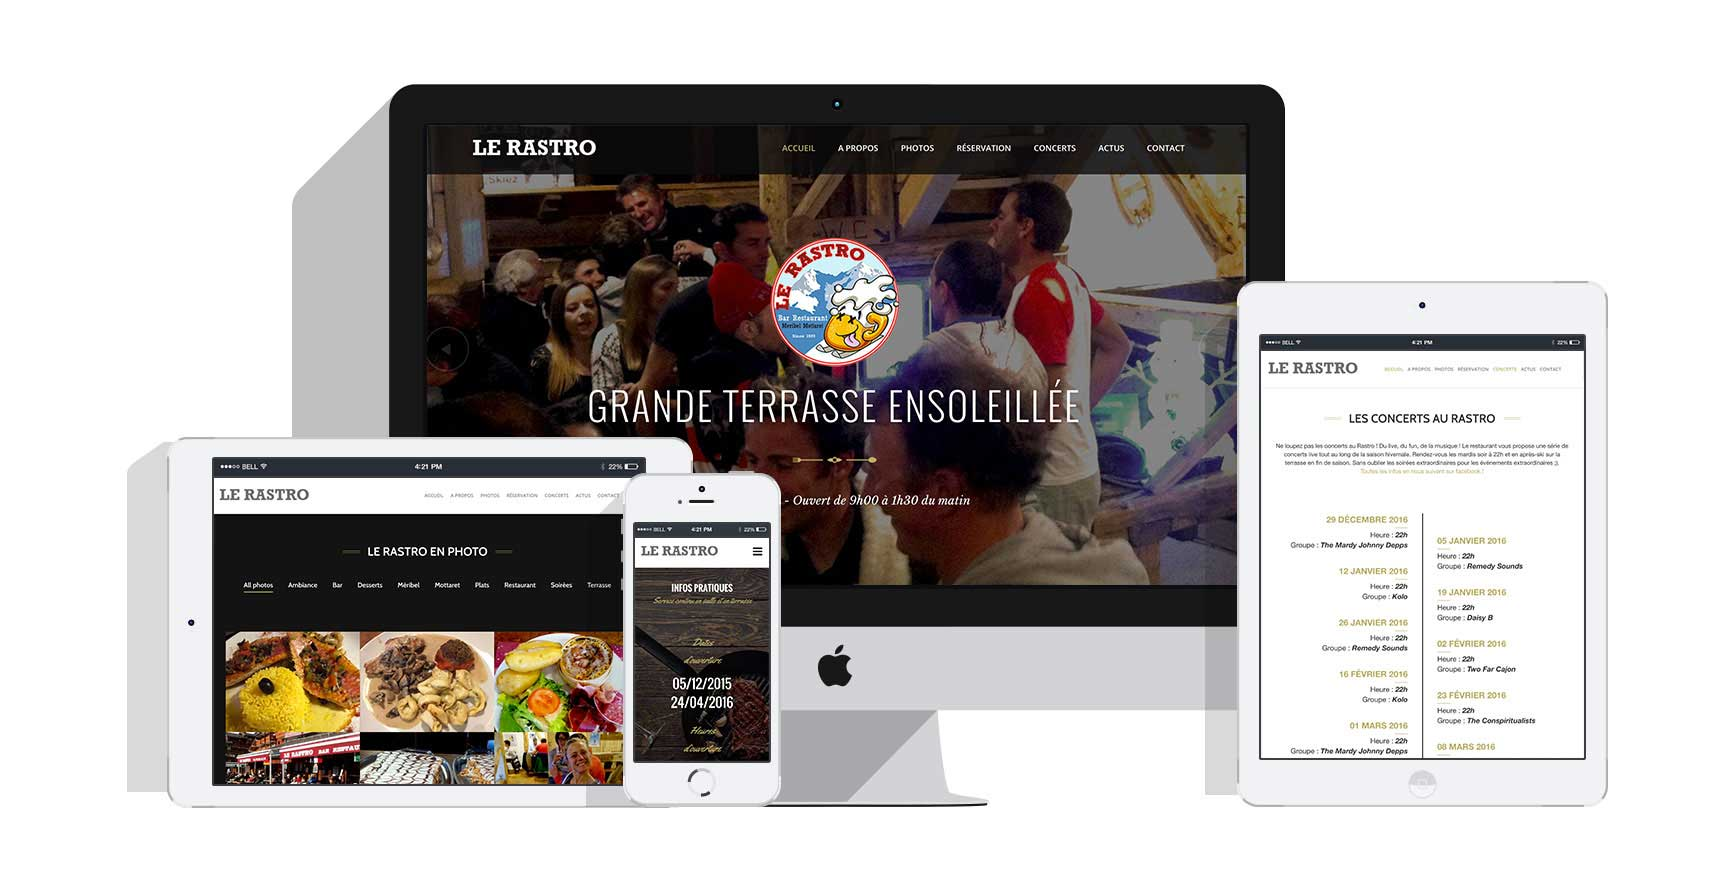 portfolio-rastro-florence-borrel-flobo-design-graphique-infographie-webdesign-savoie-tarentaise-meribel-menuires-courchevel